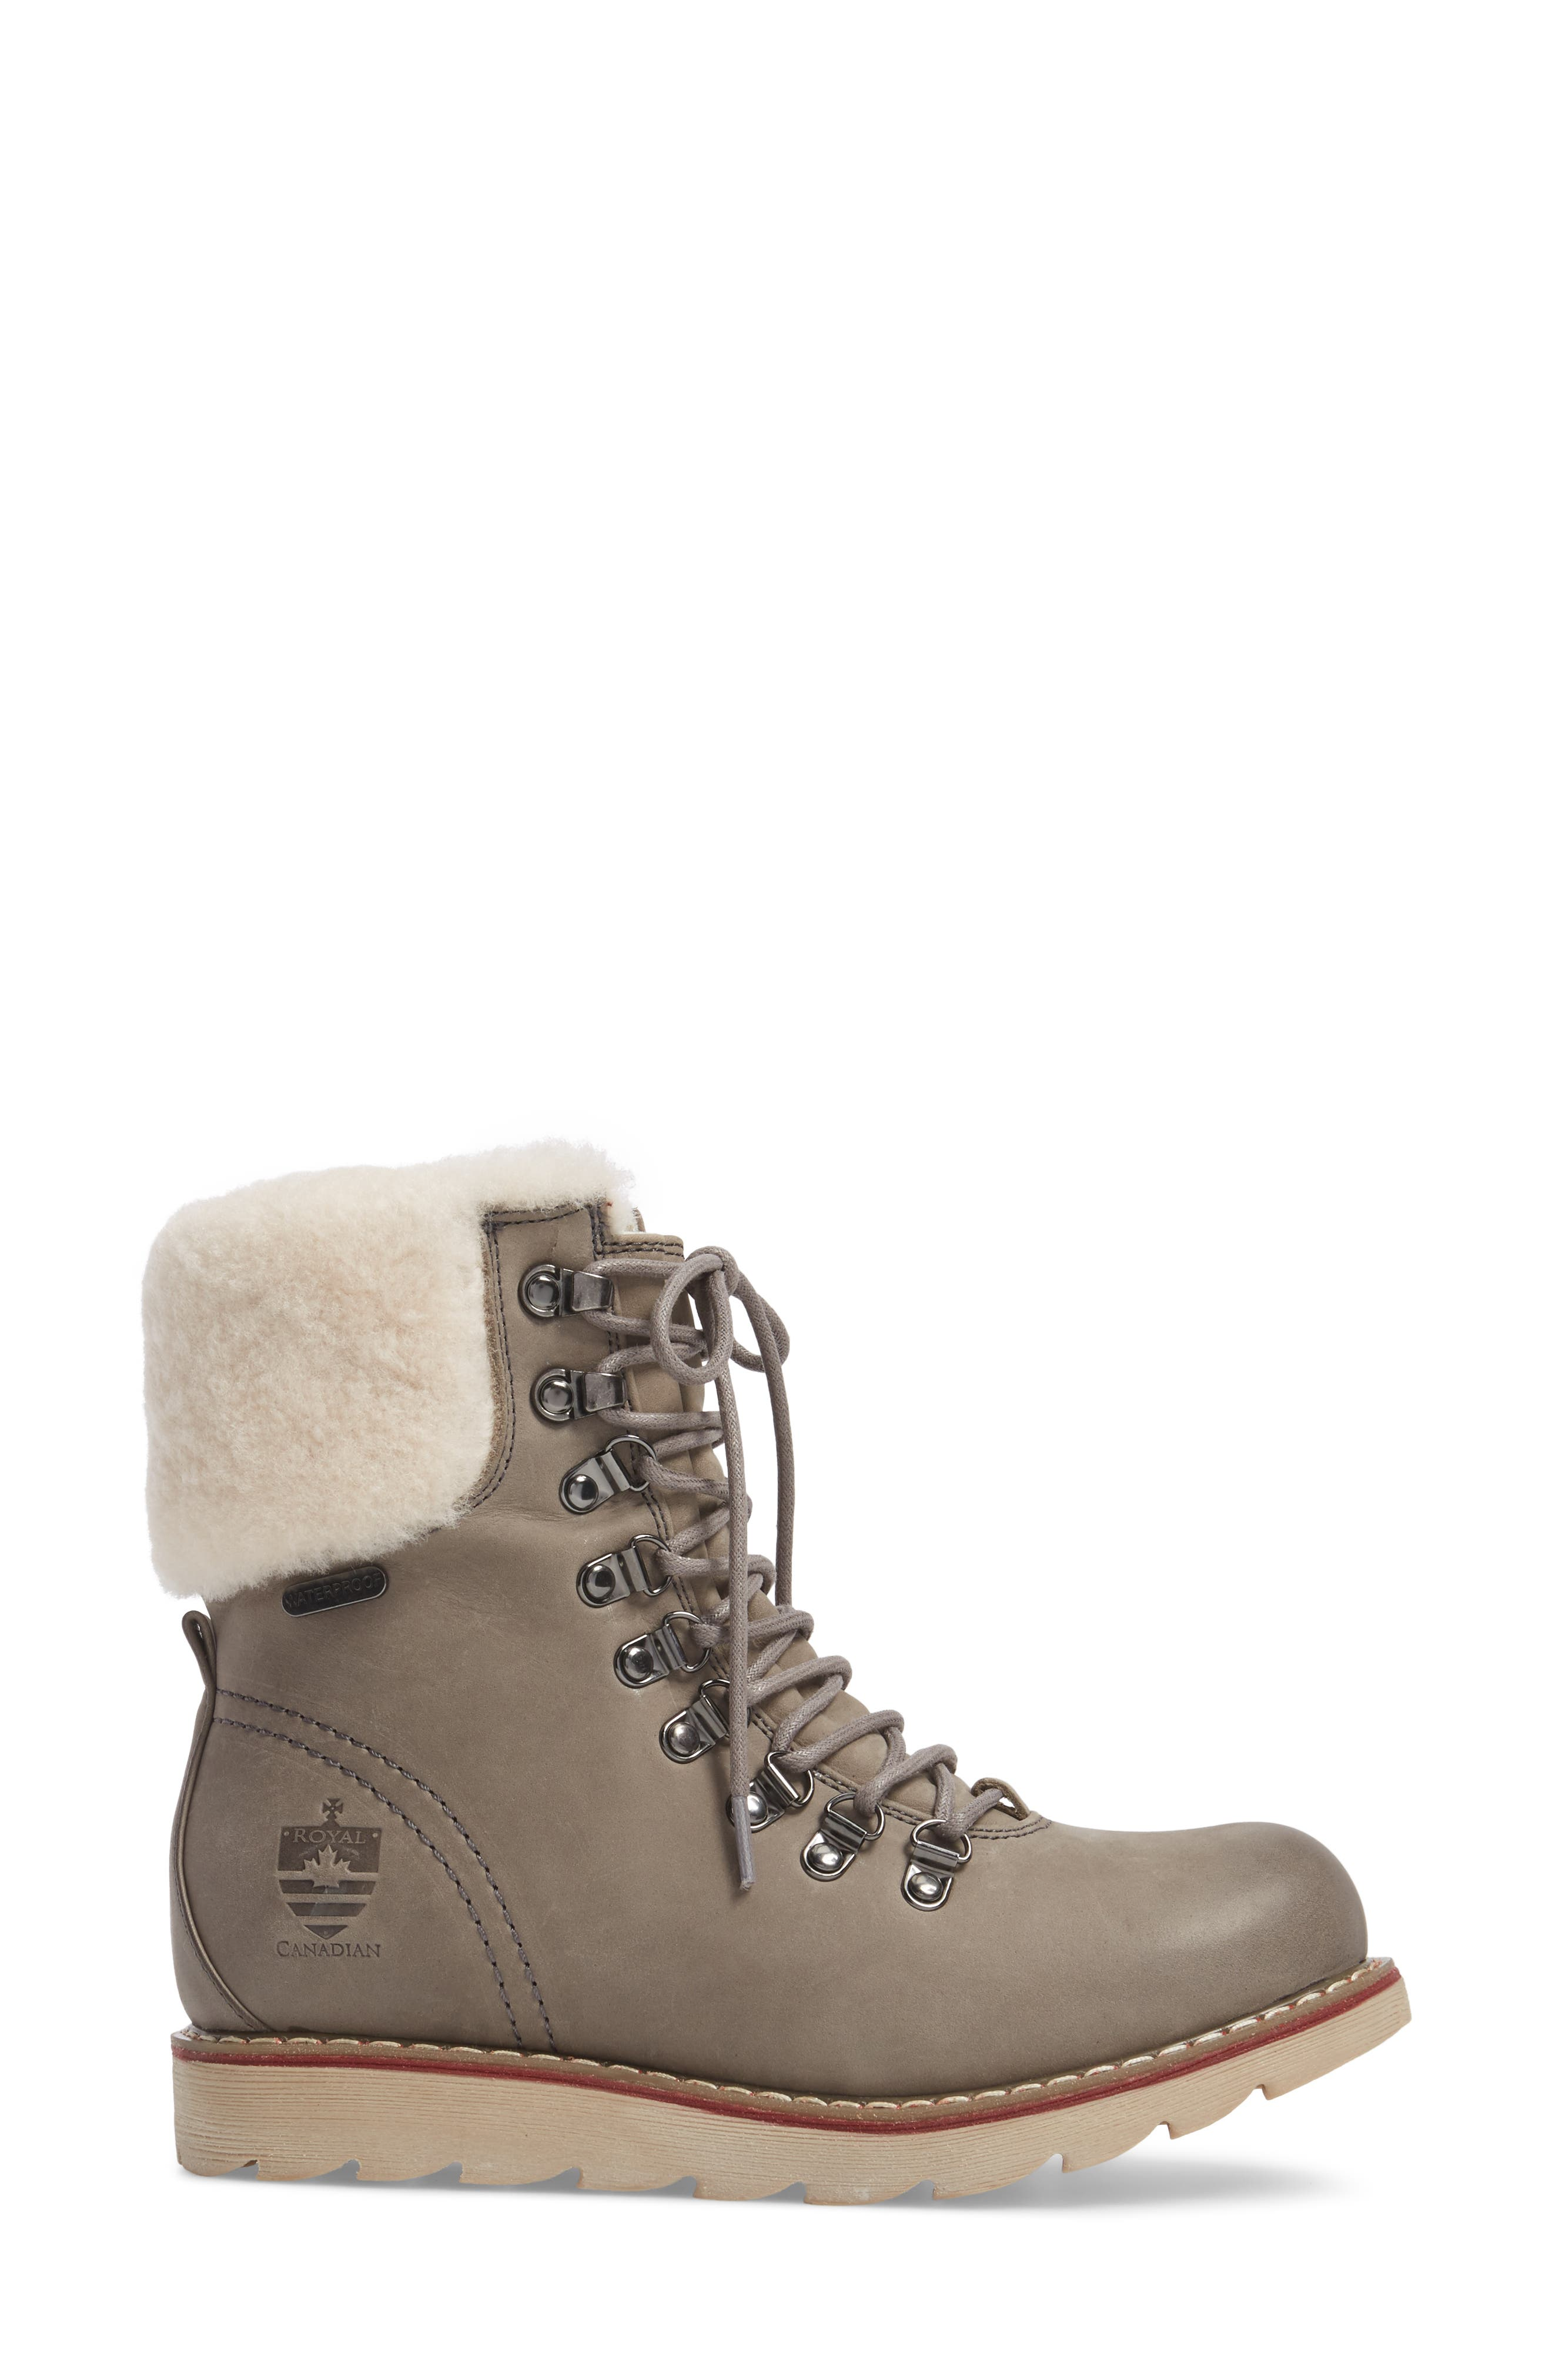 Lethbridge Waterproof Snow Boot with Genuine Shearling Cuff,                             Alternate thumbnail 3, color,                             Grey Leather